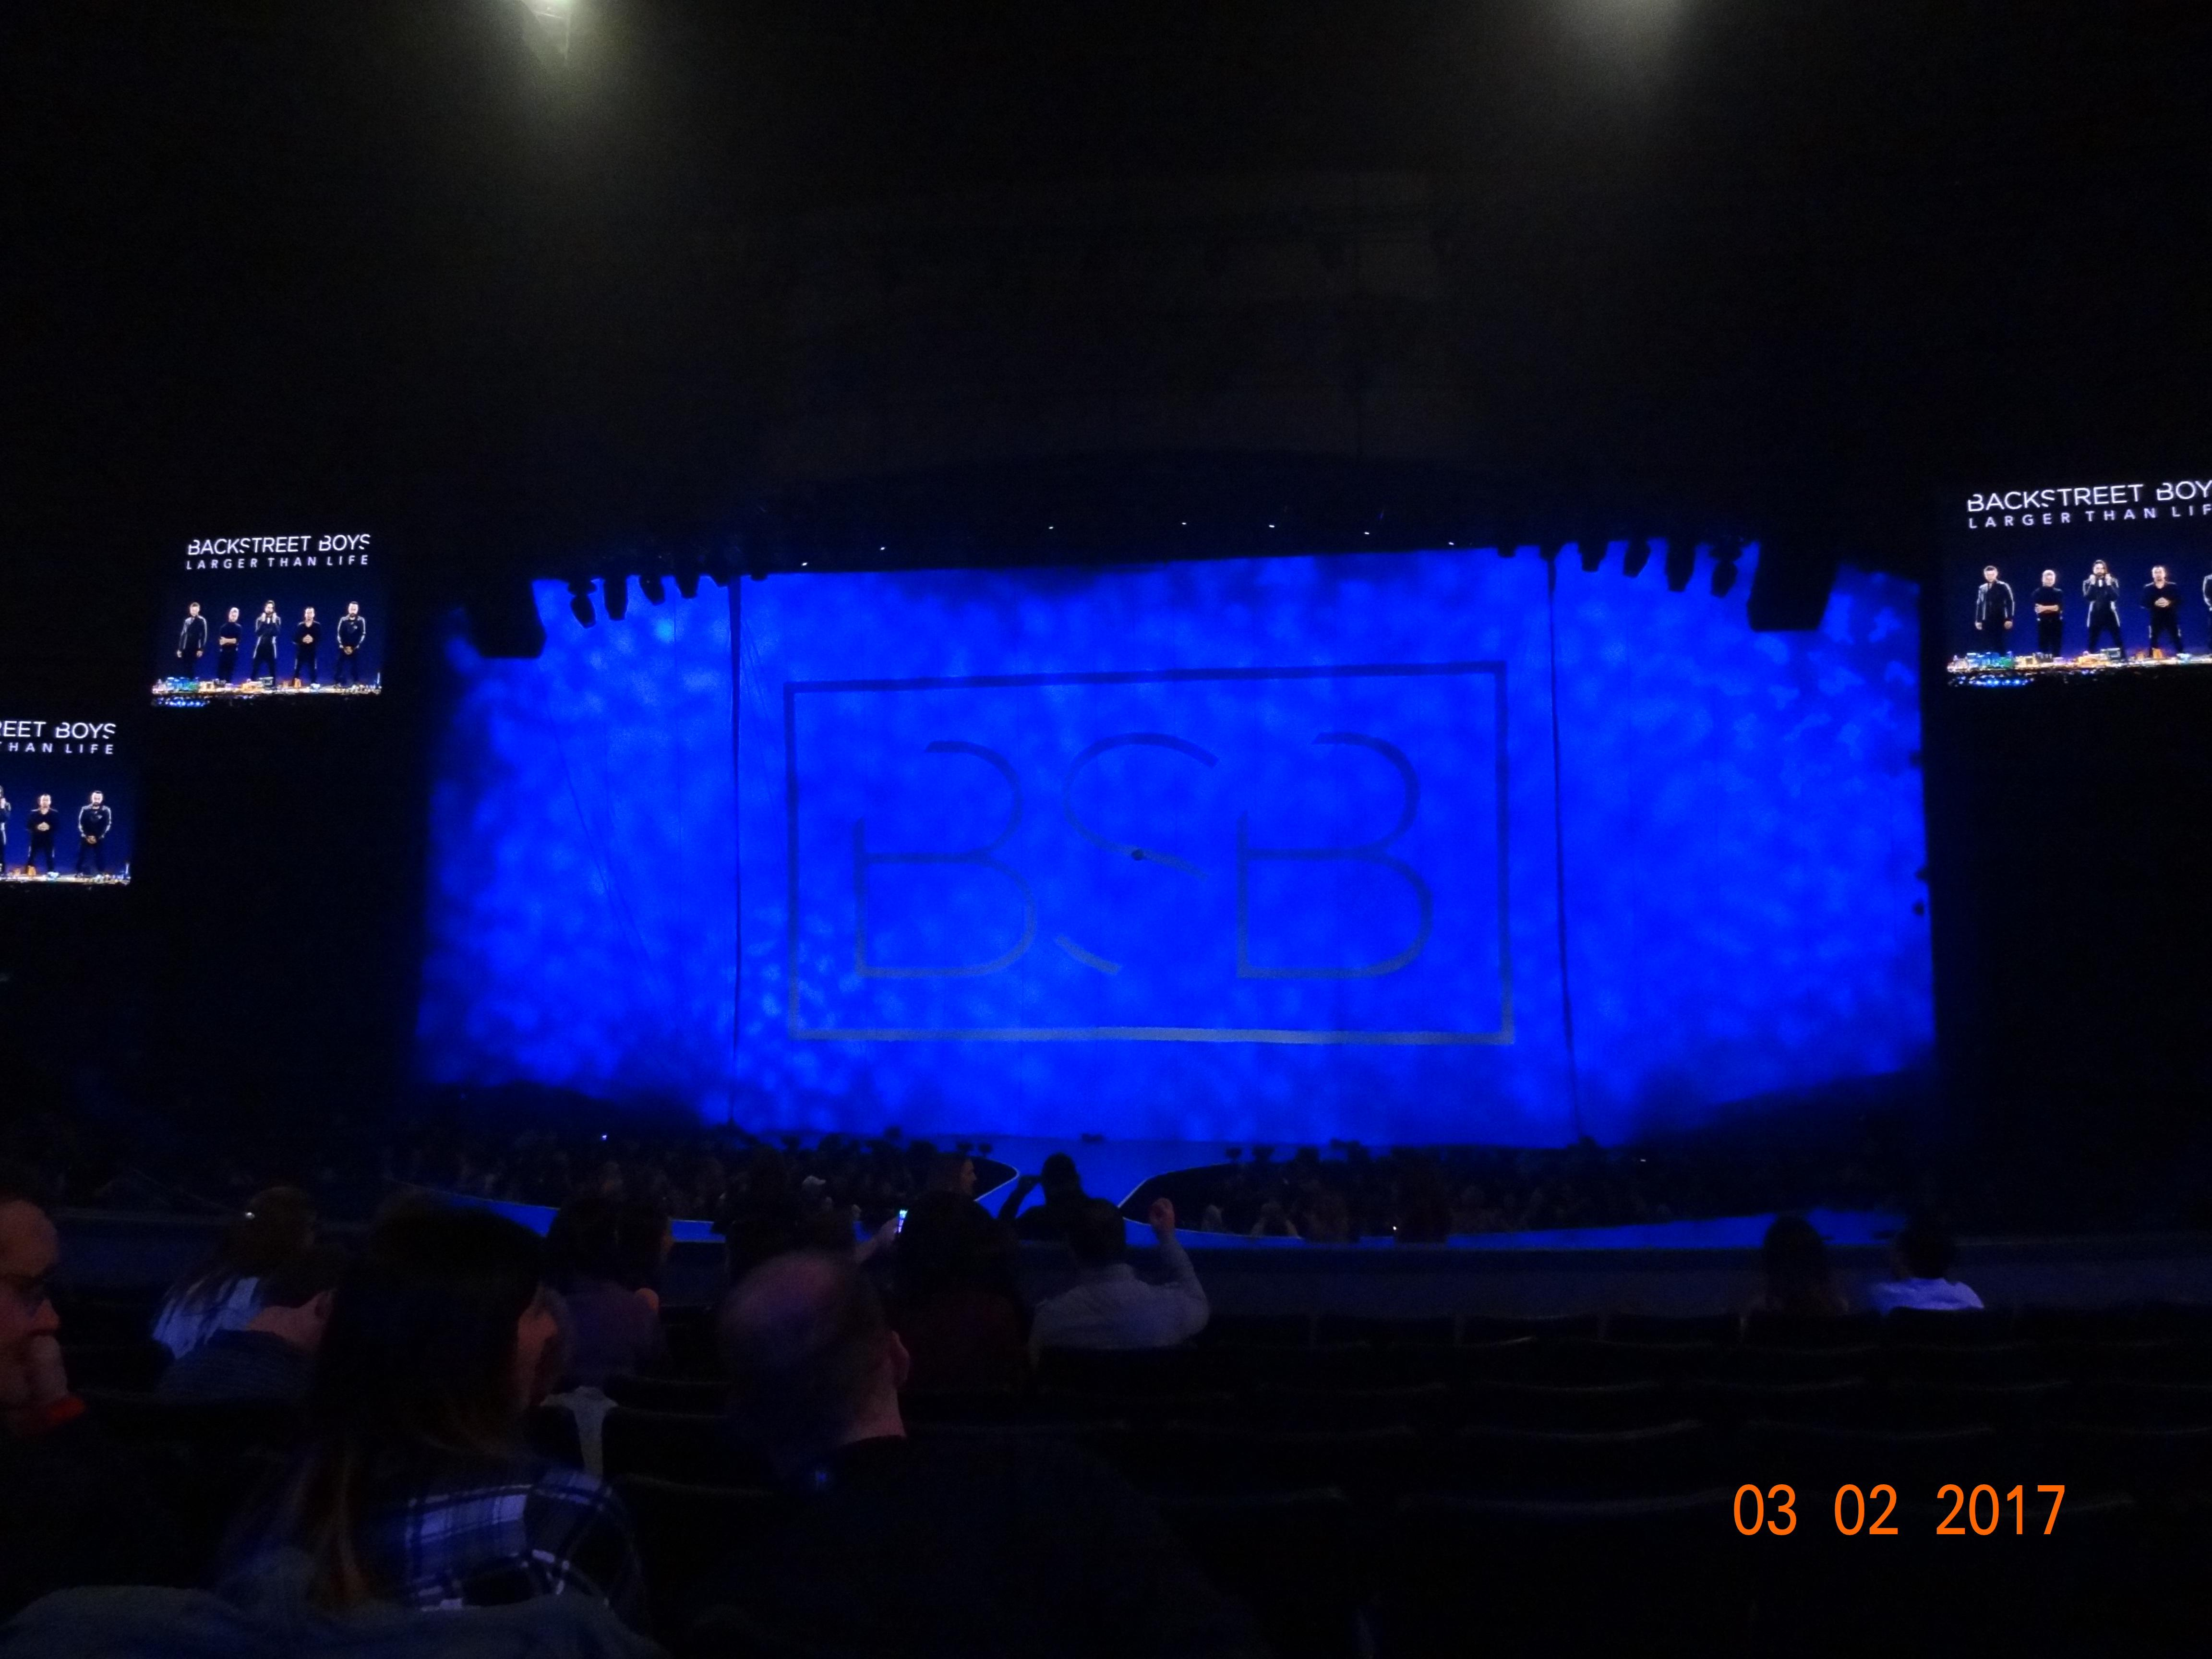 Zappos Theater Section 103 Row H Seat 10-11